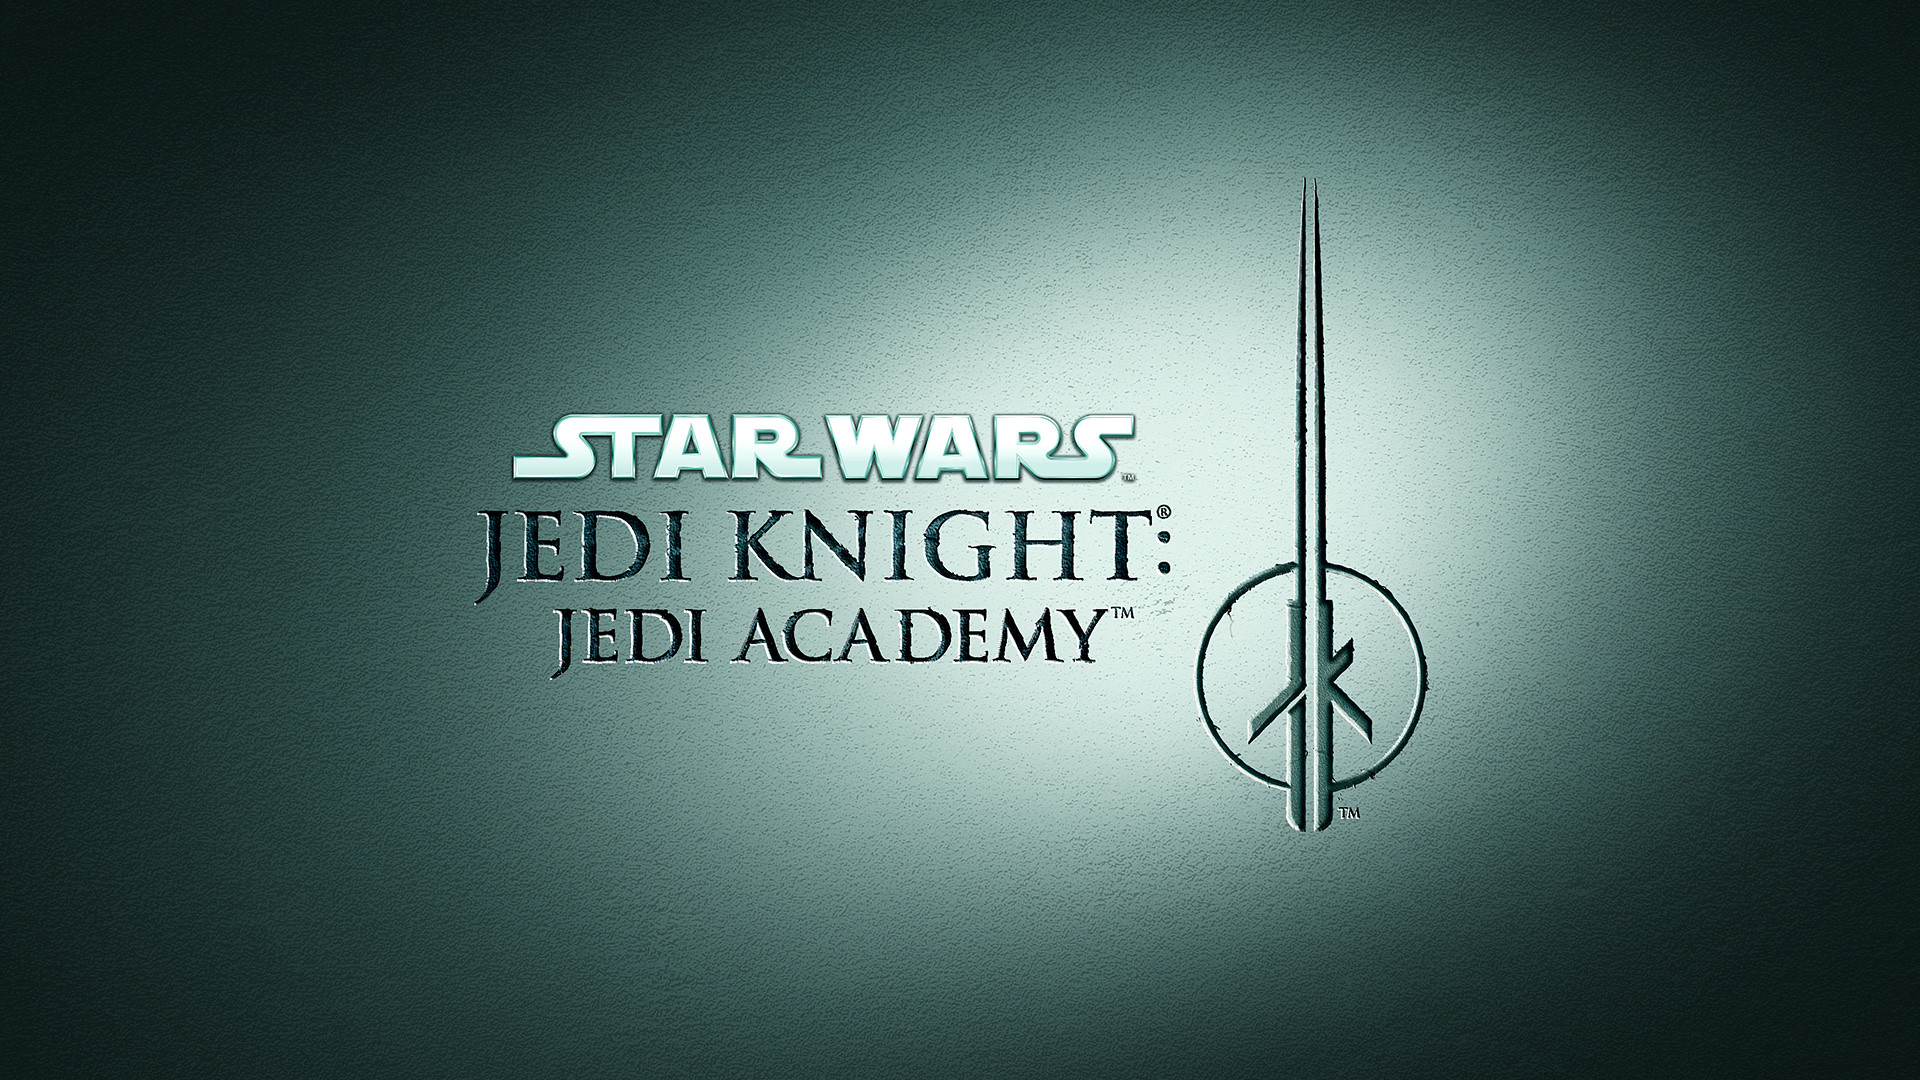 Star Wars Jedi Knight Jedi Academy Launches On Ps4 Today Playstation Blog